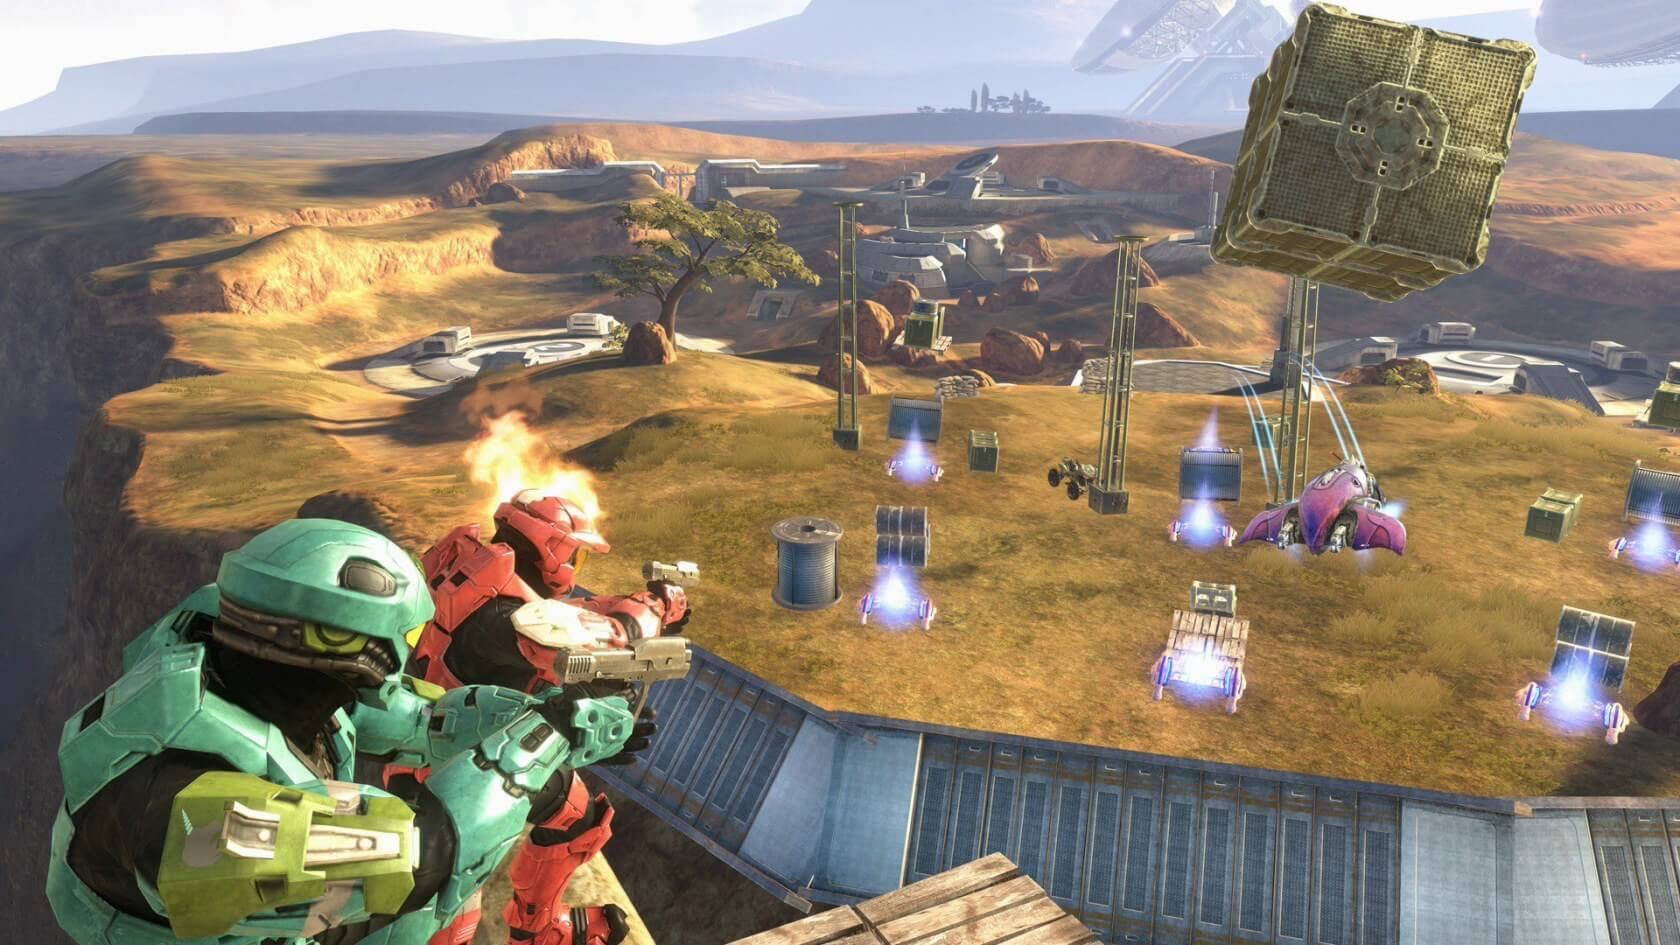 343 Halo MCC matchmaking cosa scrivere su online dating e-mail